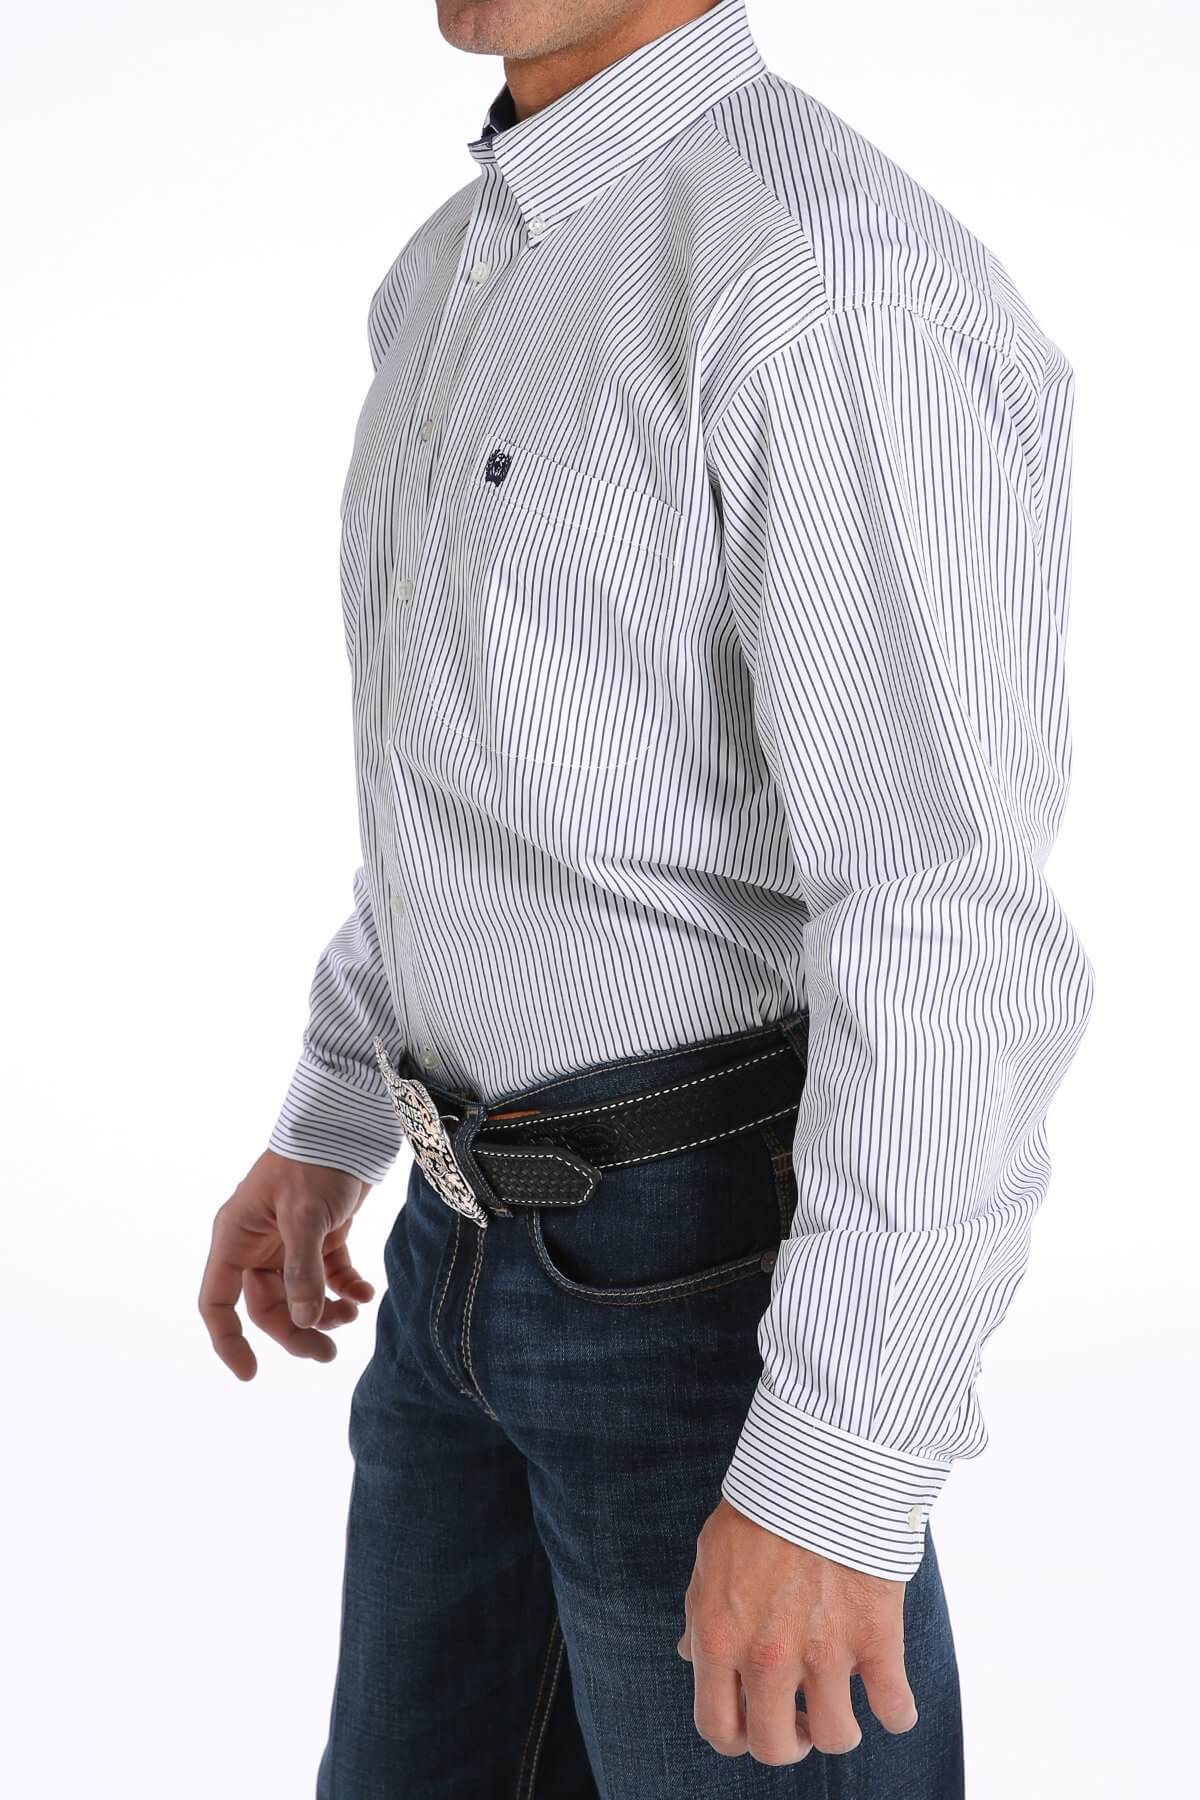 576263294 Men's Cinch White and Navy Striped Shirt - Diamond K Country